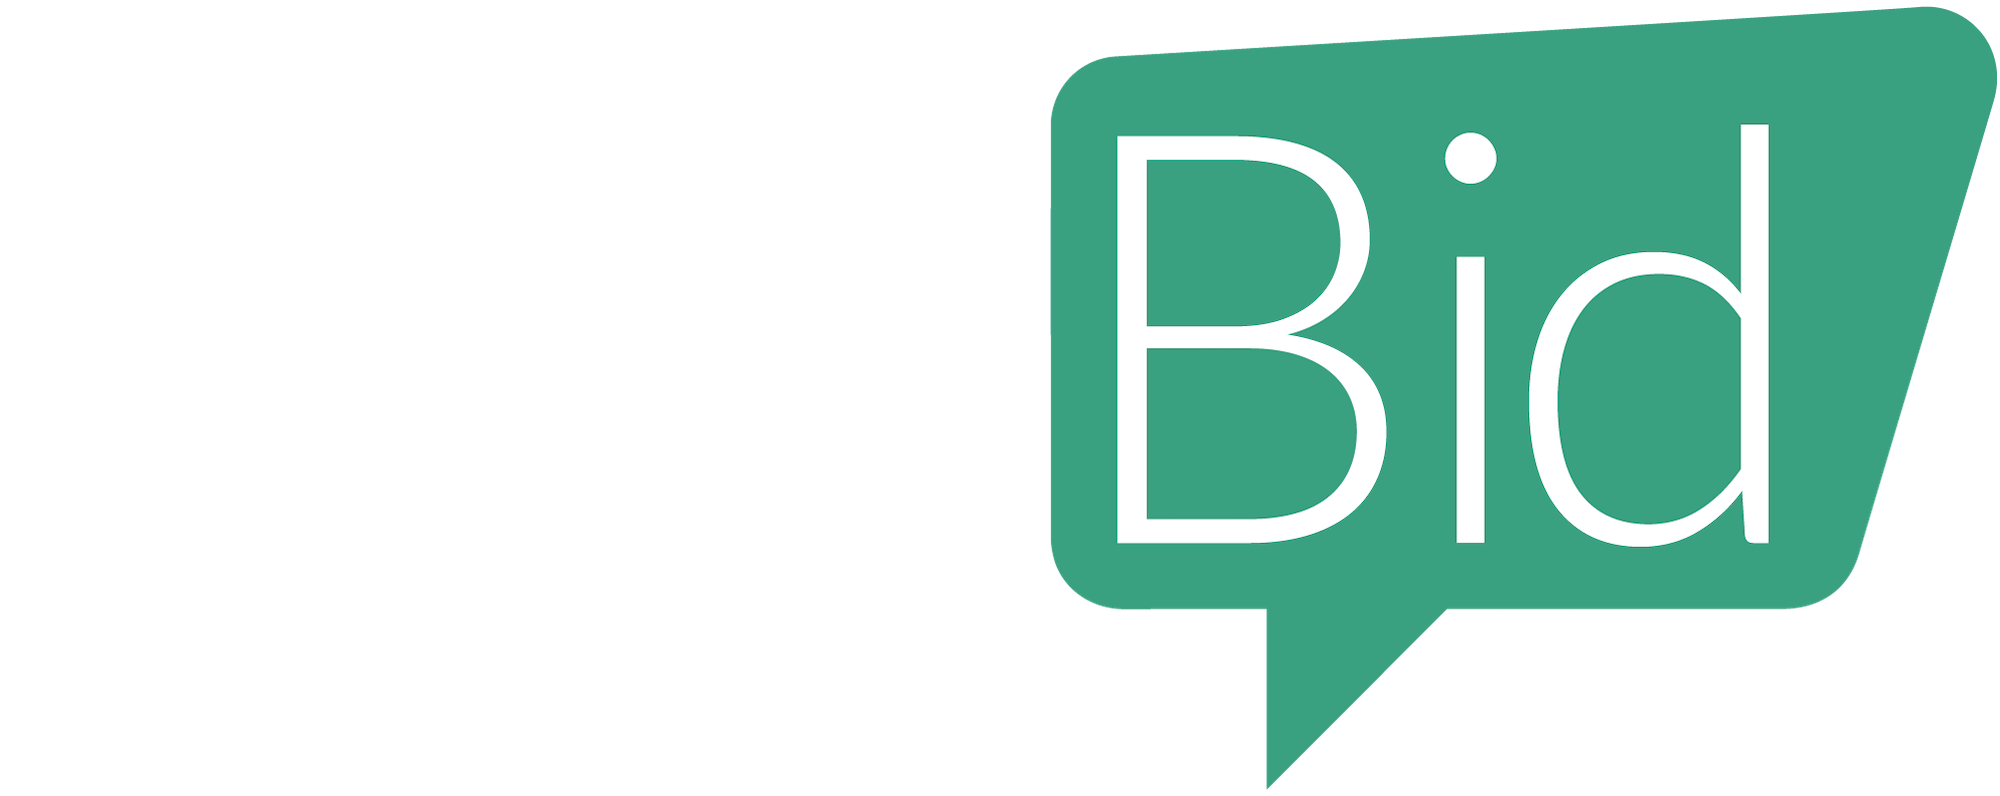 galabid mobile fundraising platform to raise money for charities